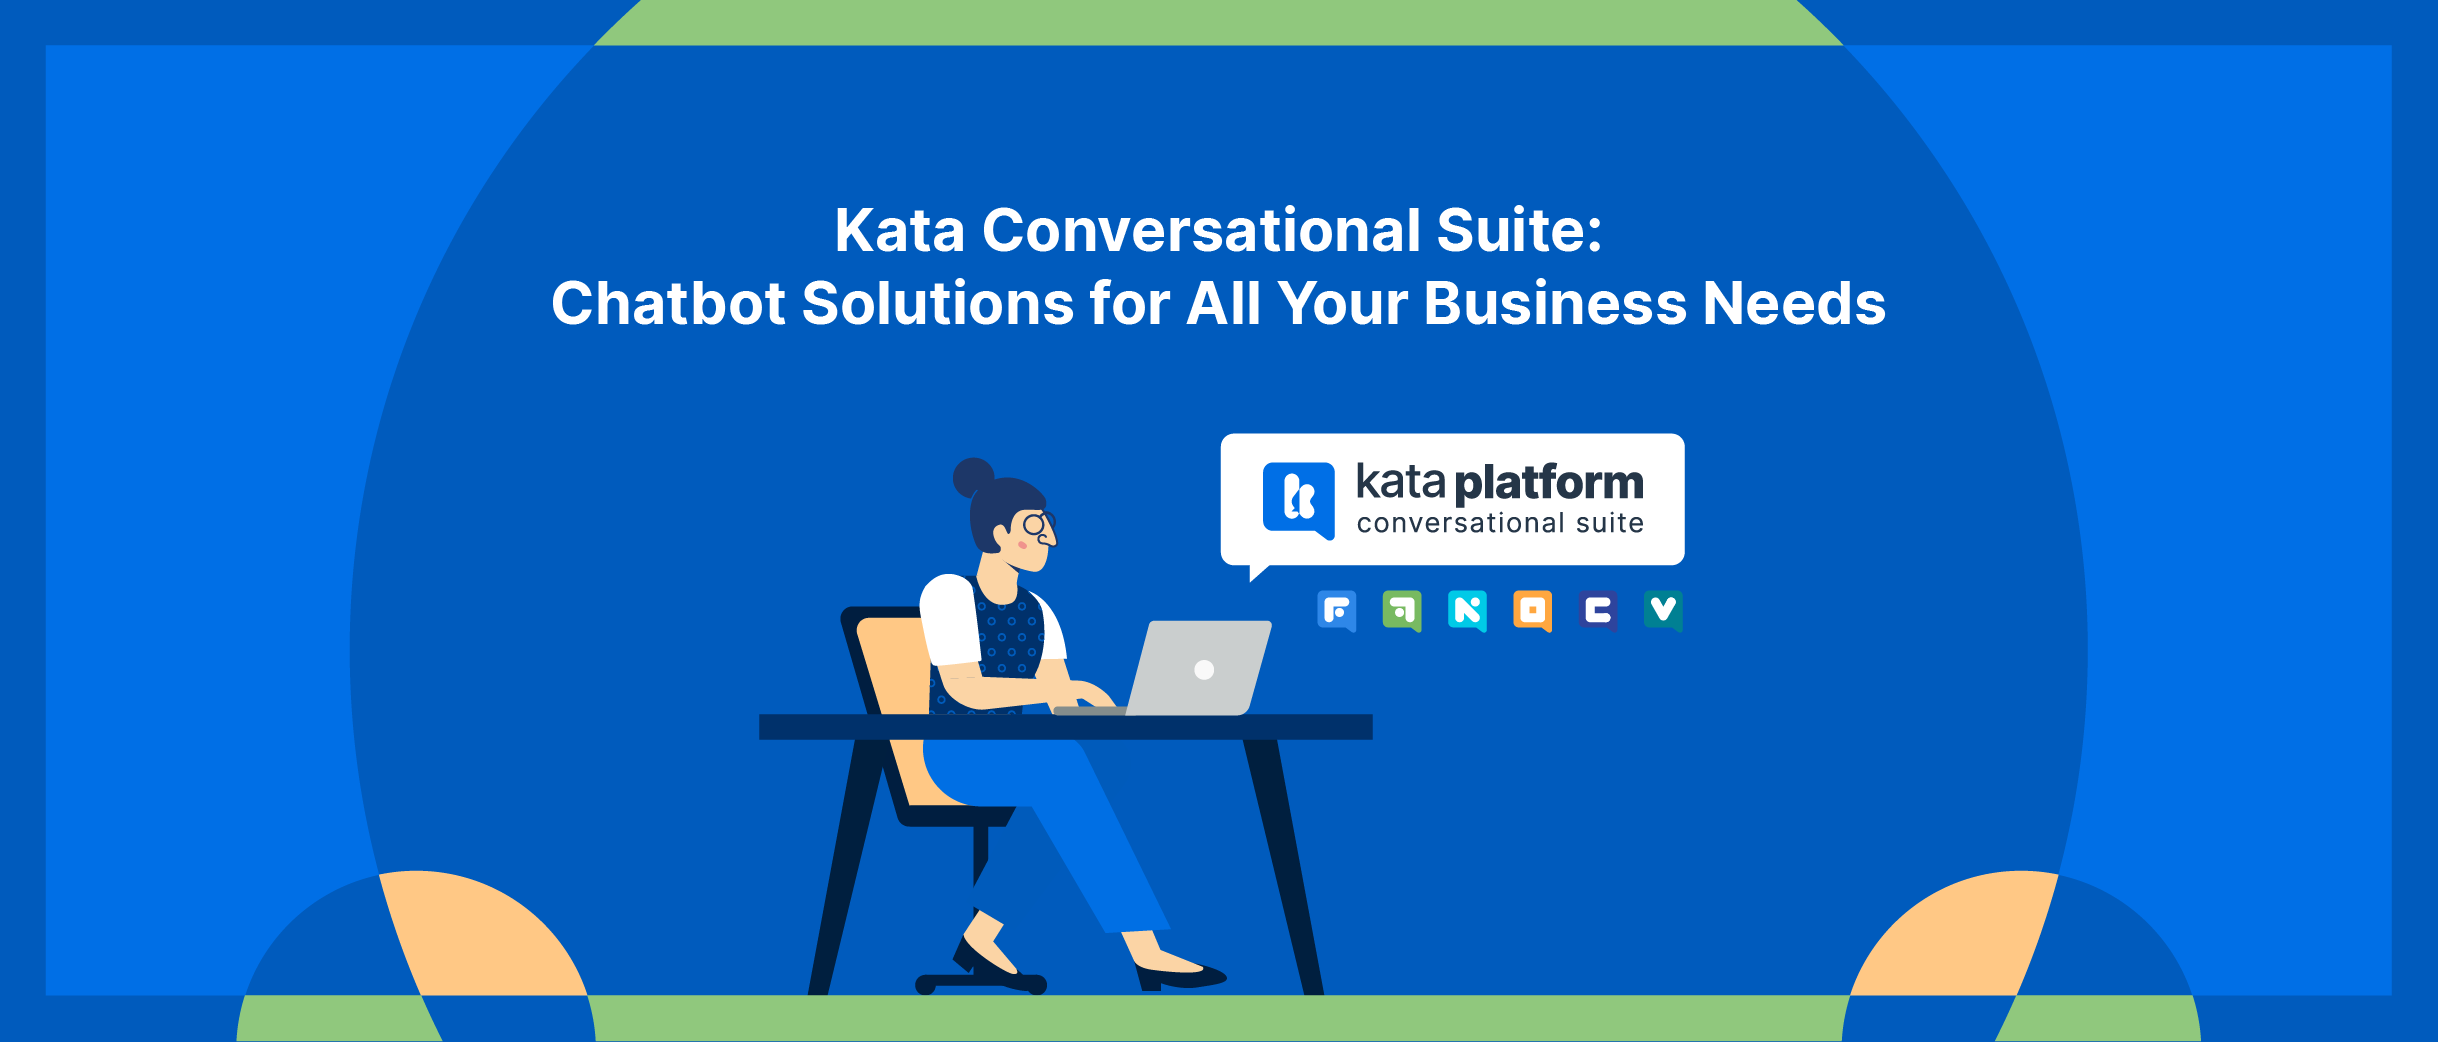 Kata Conversational Suite: Chatbot Solutions for All Your Business Needs